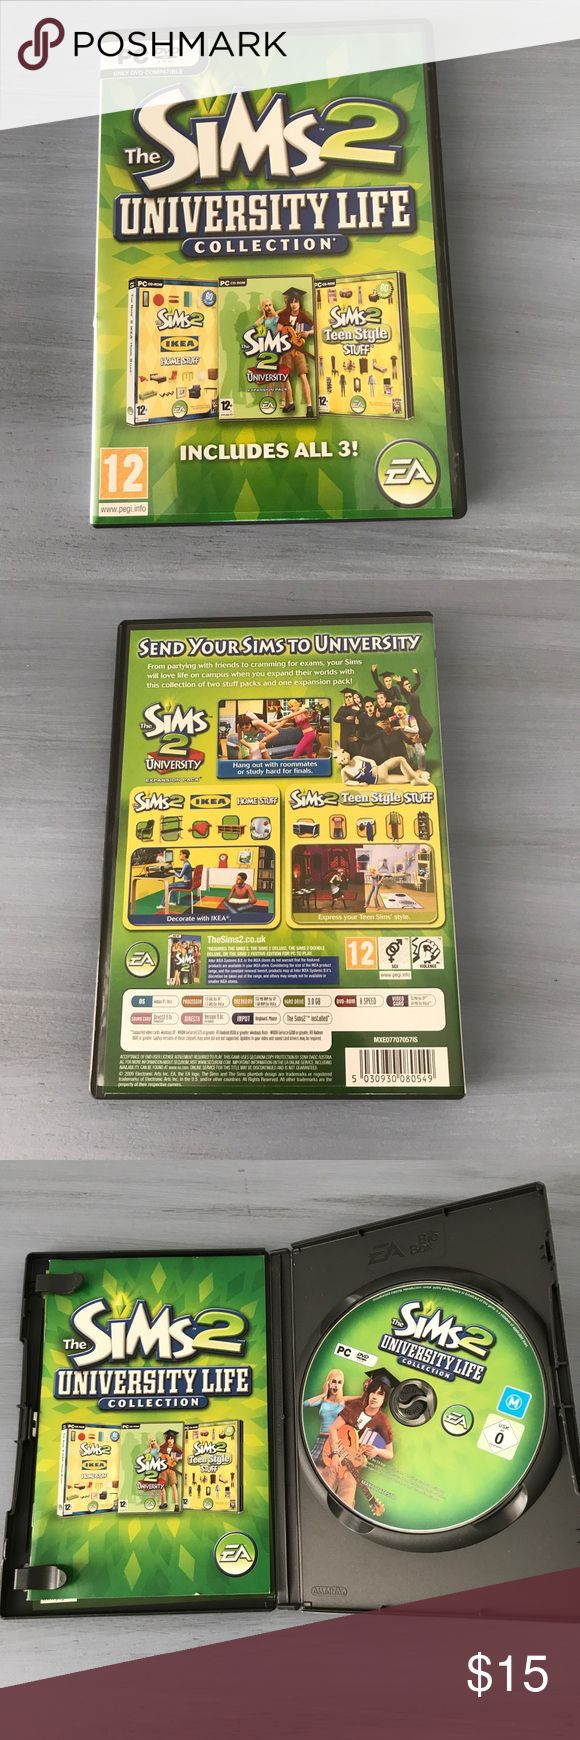 The Sims two university life collection The Sims 2 university life collection Game Other